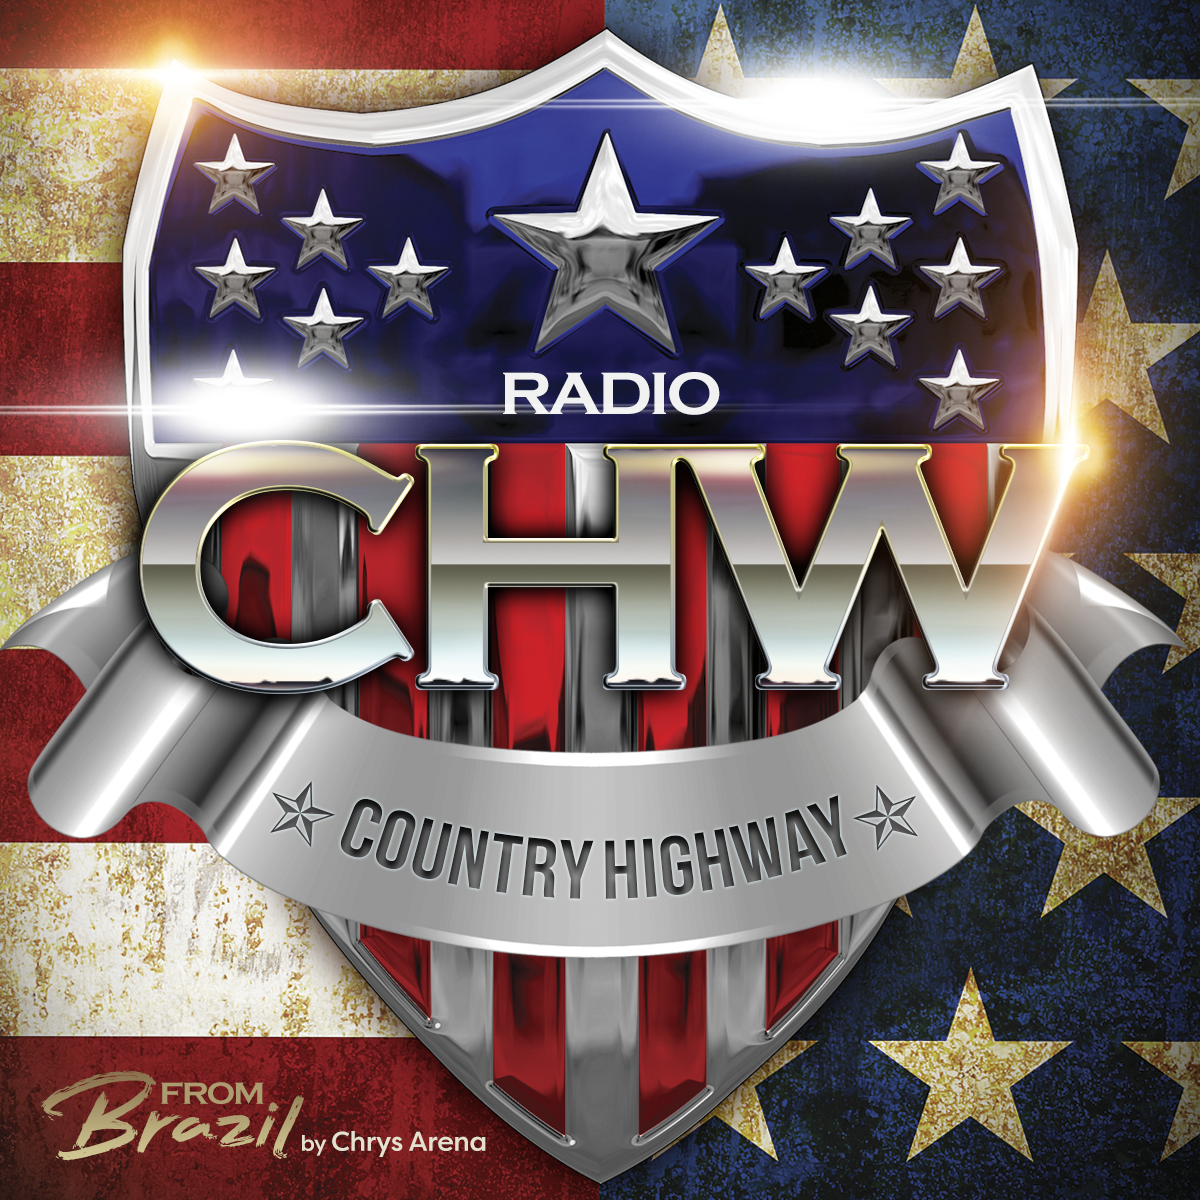 CHW Country Highway (From Brazil)